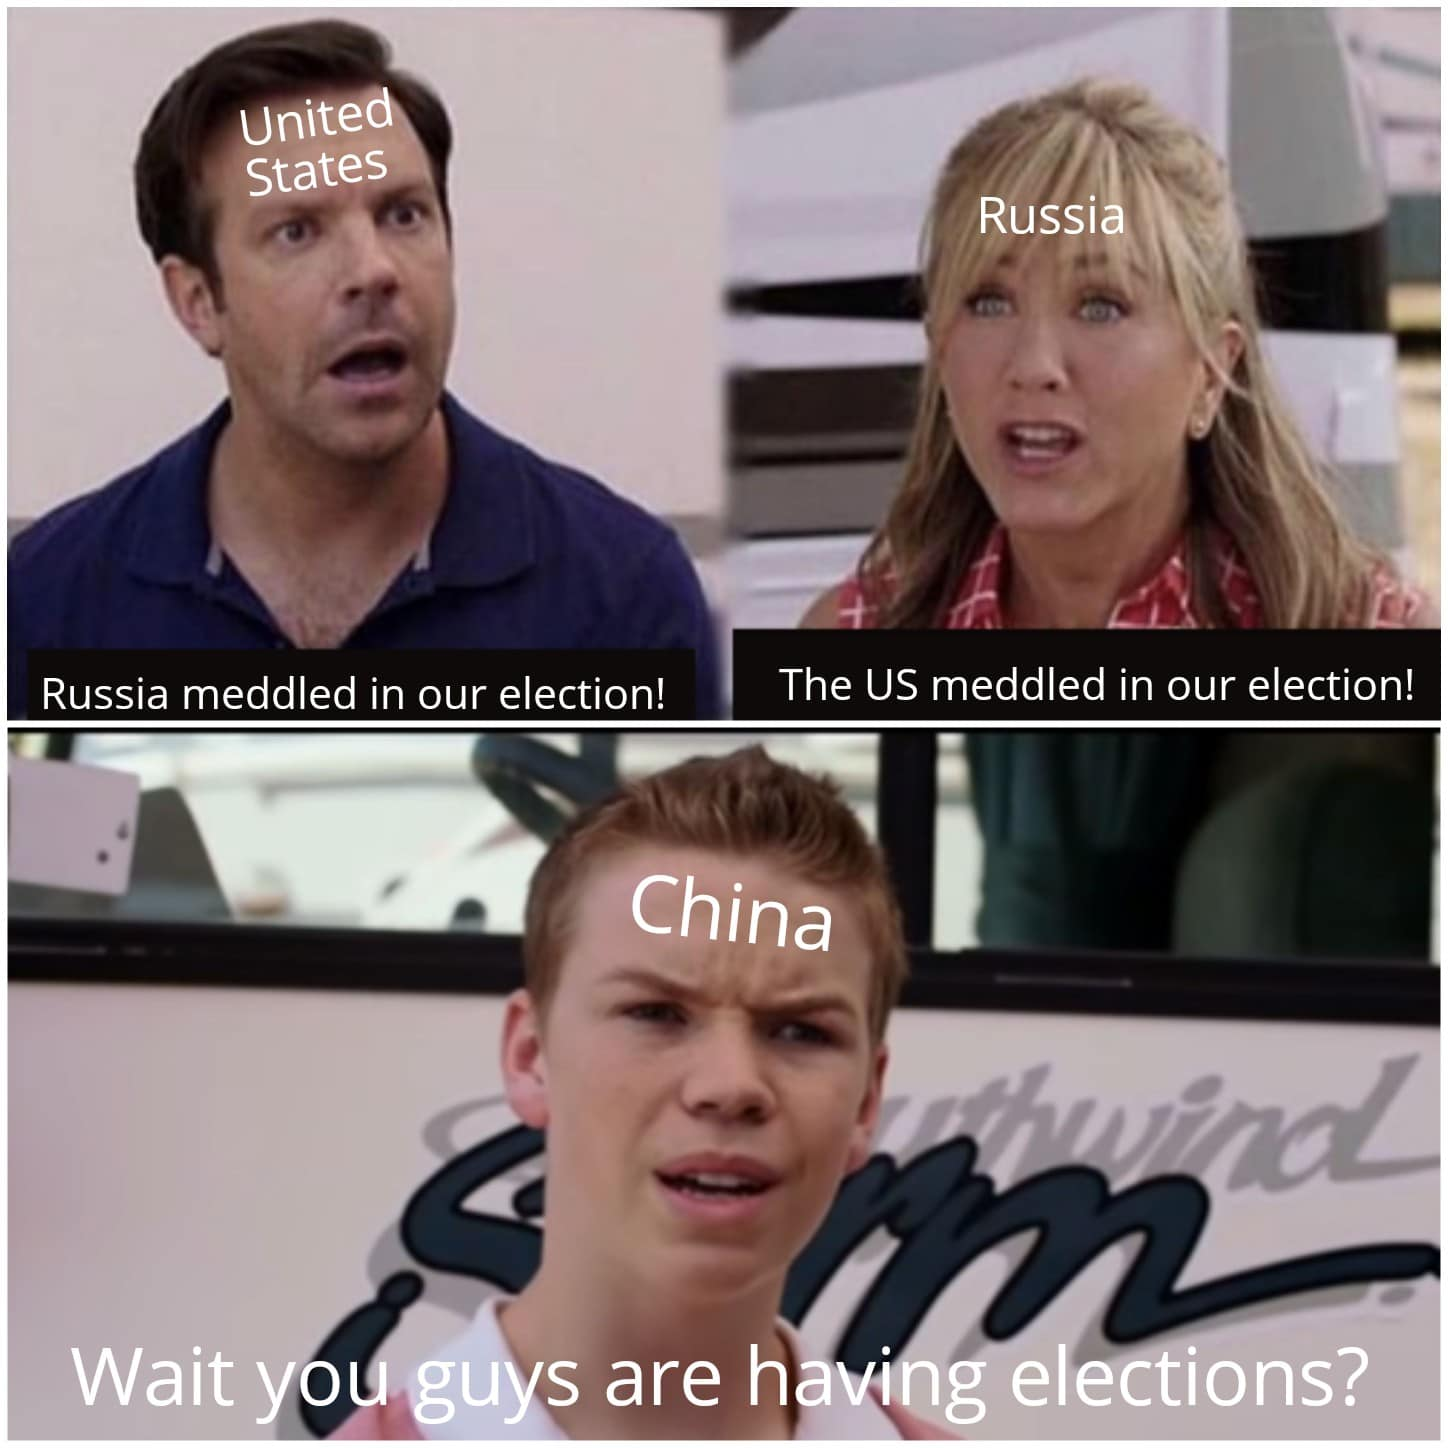 Dank, Political Meme, US, China, Russia dank-memes cute text: Unite States Russia meddled in our election! Russi The US meddled in our election! Wait China s are h